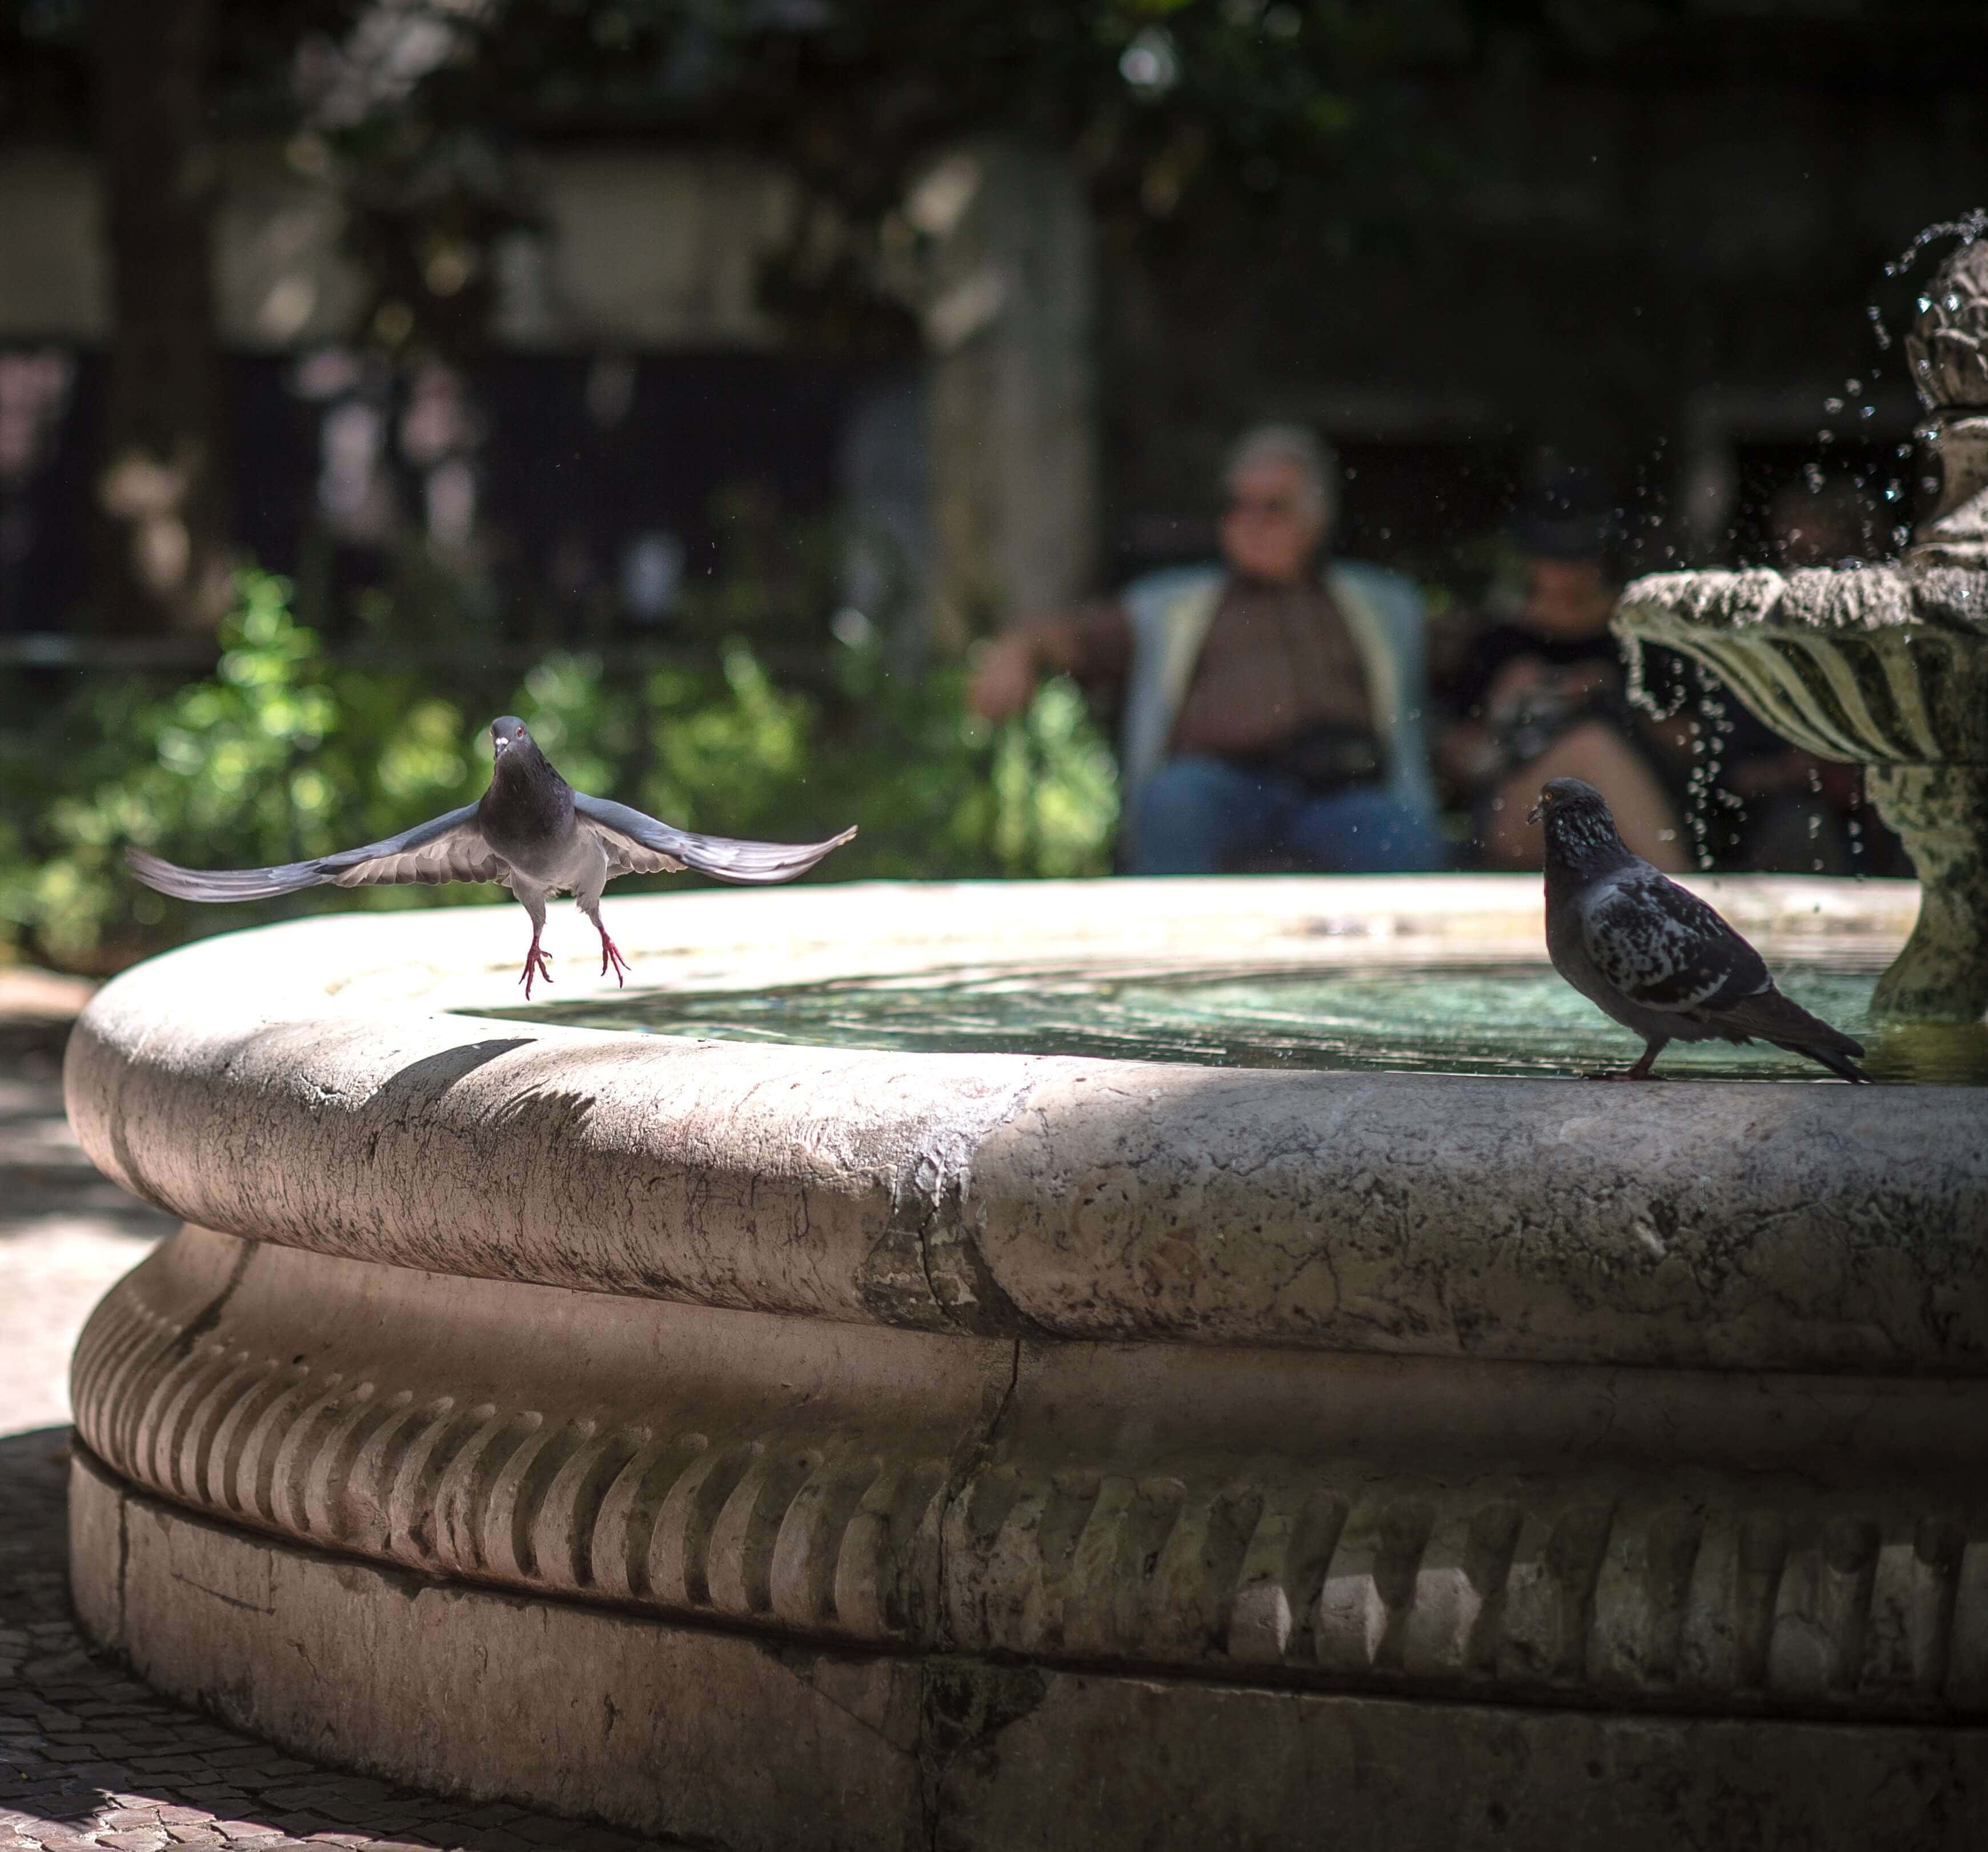 What Affect Do Outdoor Birdbaths Have On Birds And Humans?